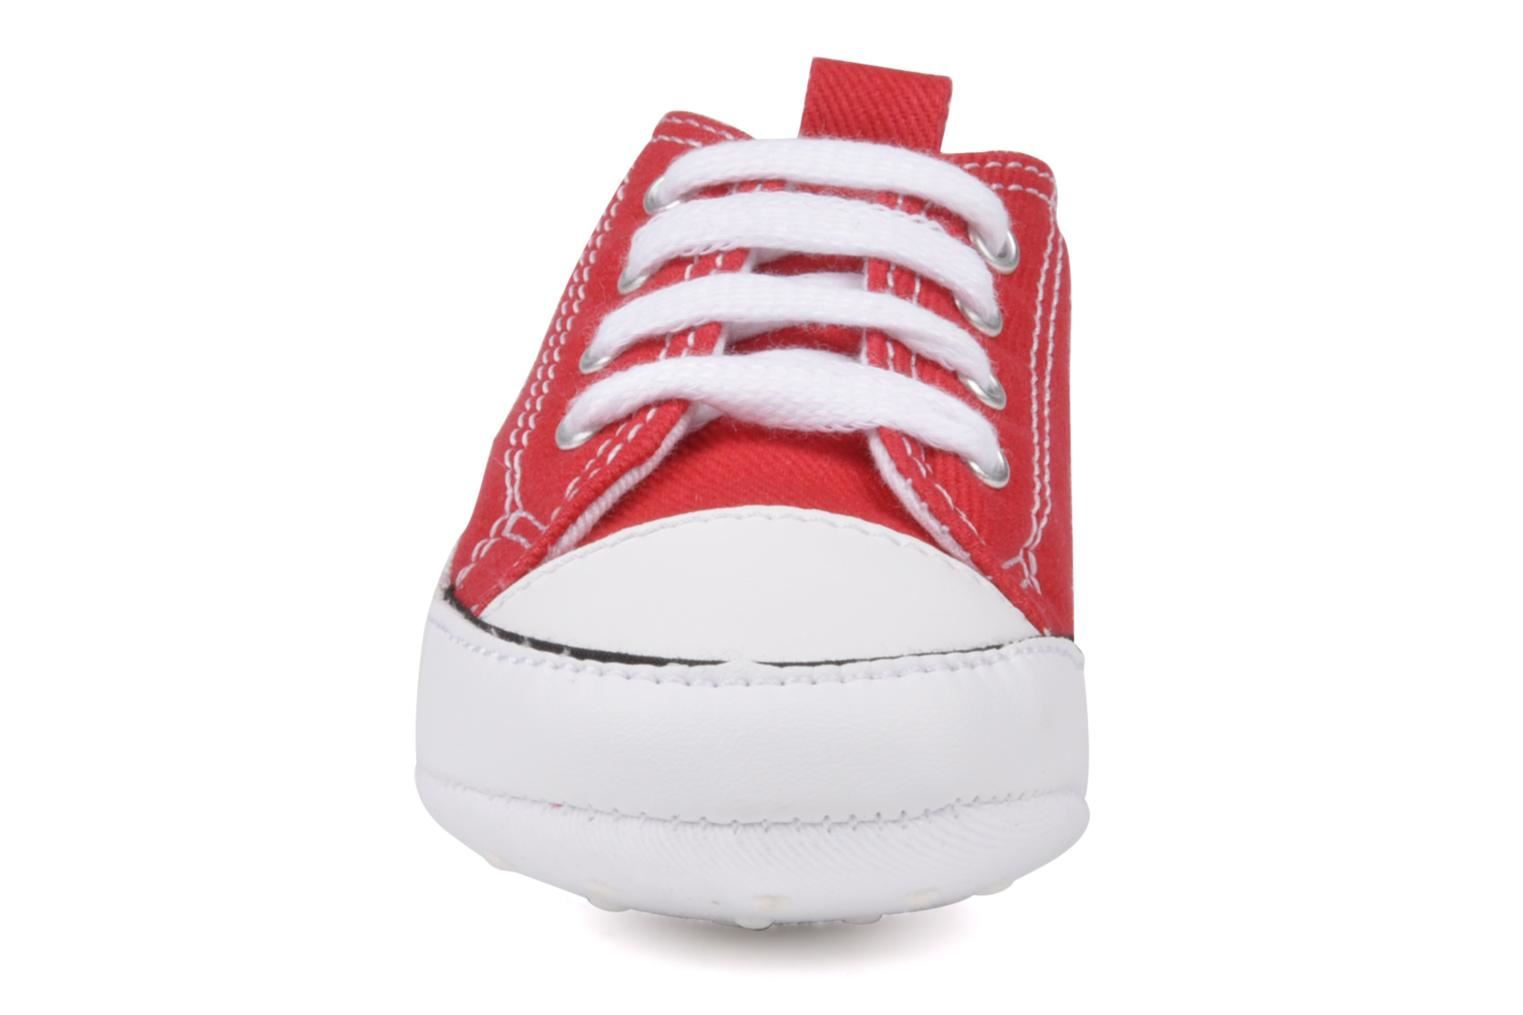 0ef68b0923cb CONVERSE FIRST STAR RED CRIB 88875 – ViviFashion